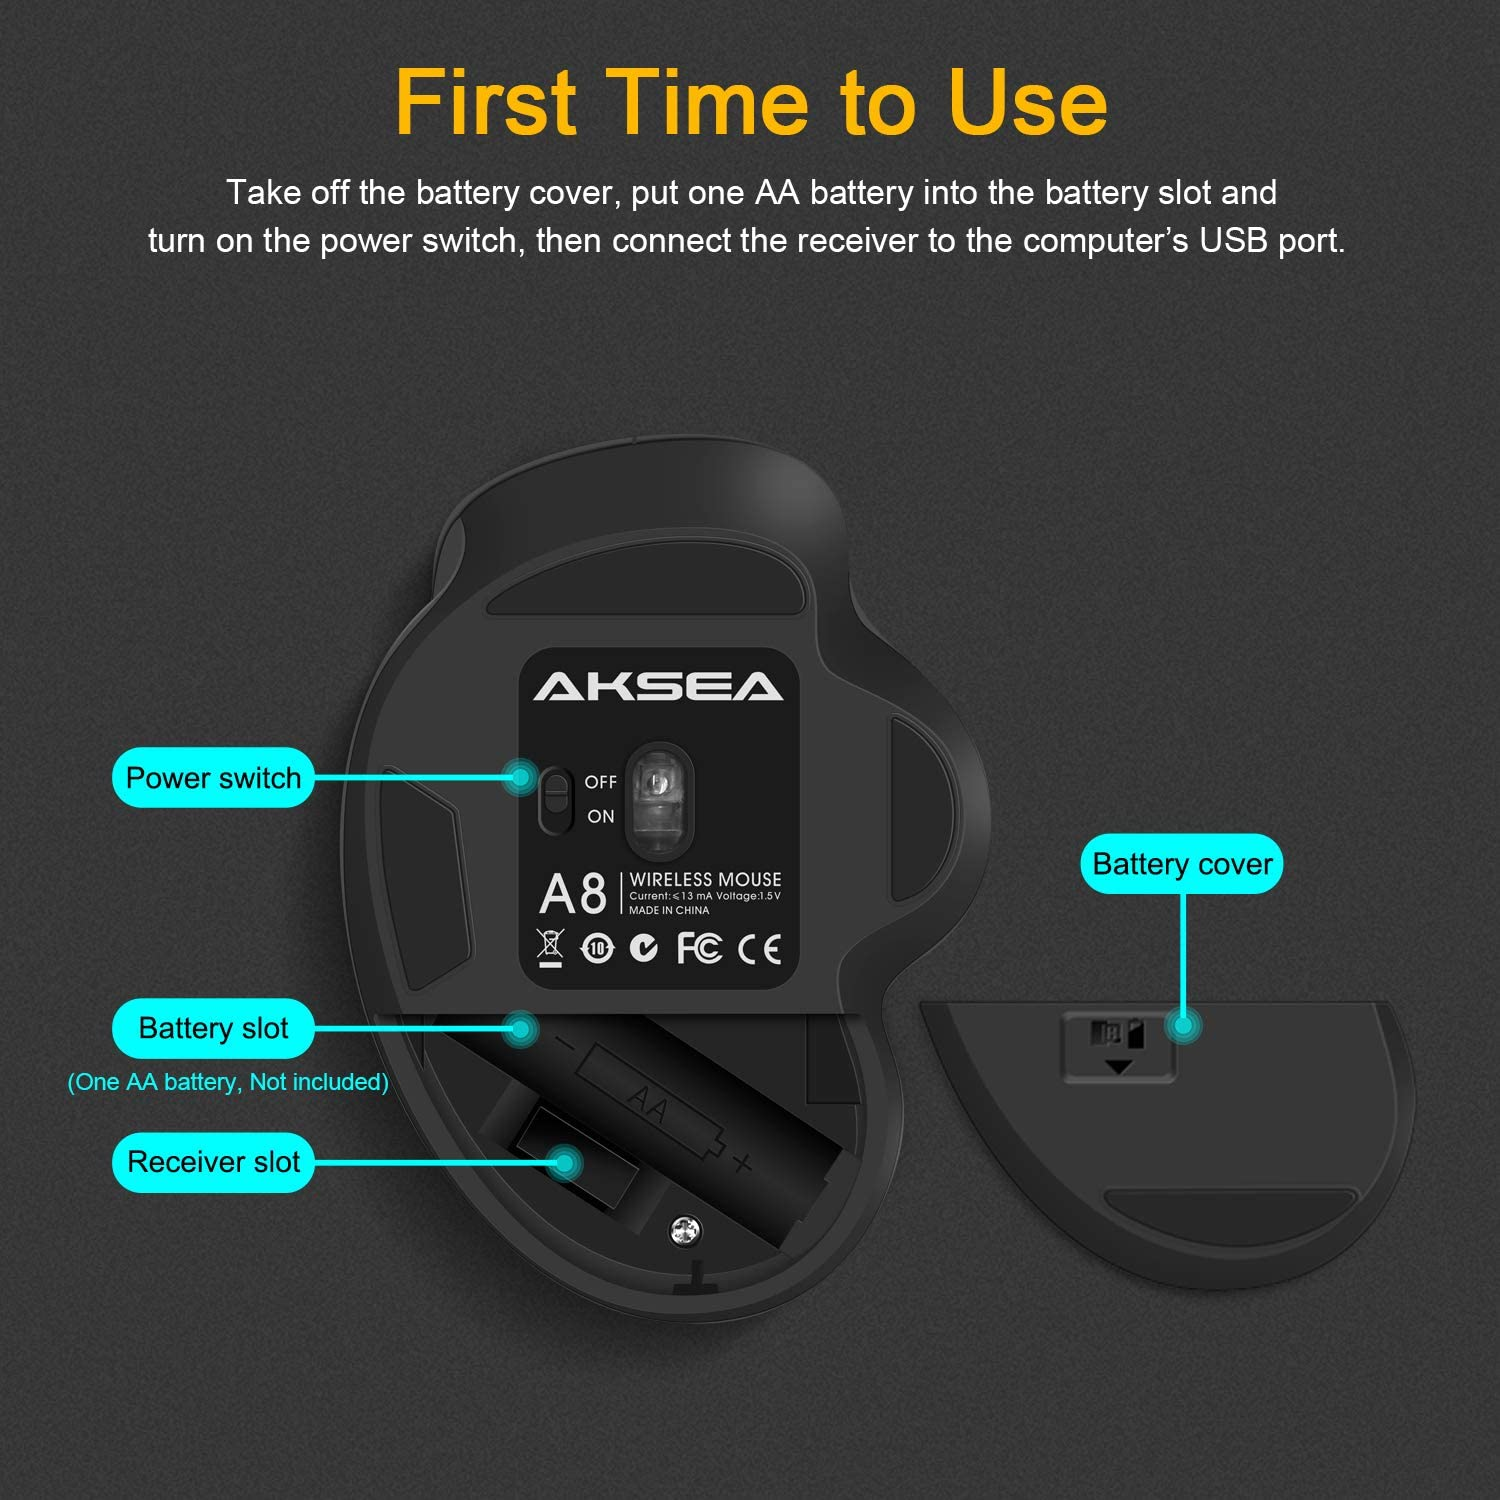 3-level Adjustable for Windows 6 Buttons AKSEA Wireless Mouse,2.4G Full Size Ergonomic Design PC Laptop Cordless Mice with USB Nano Receiver Black Mac,Macbook,PC,Computer,Gaming,Office